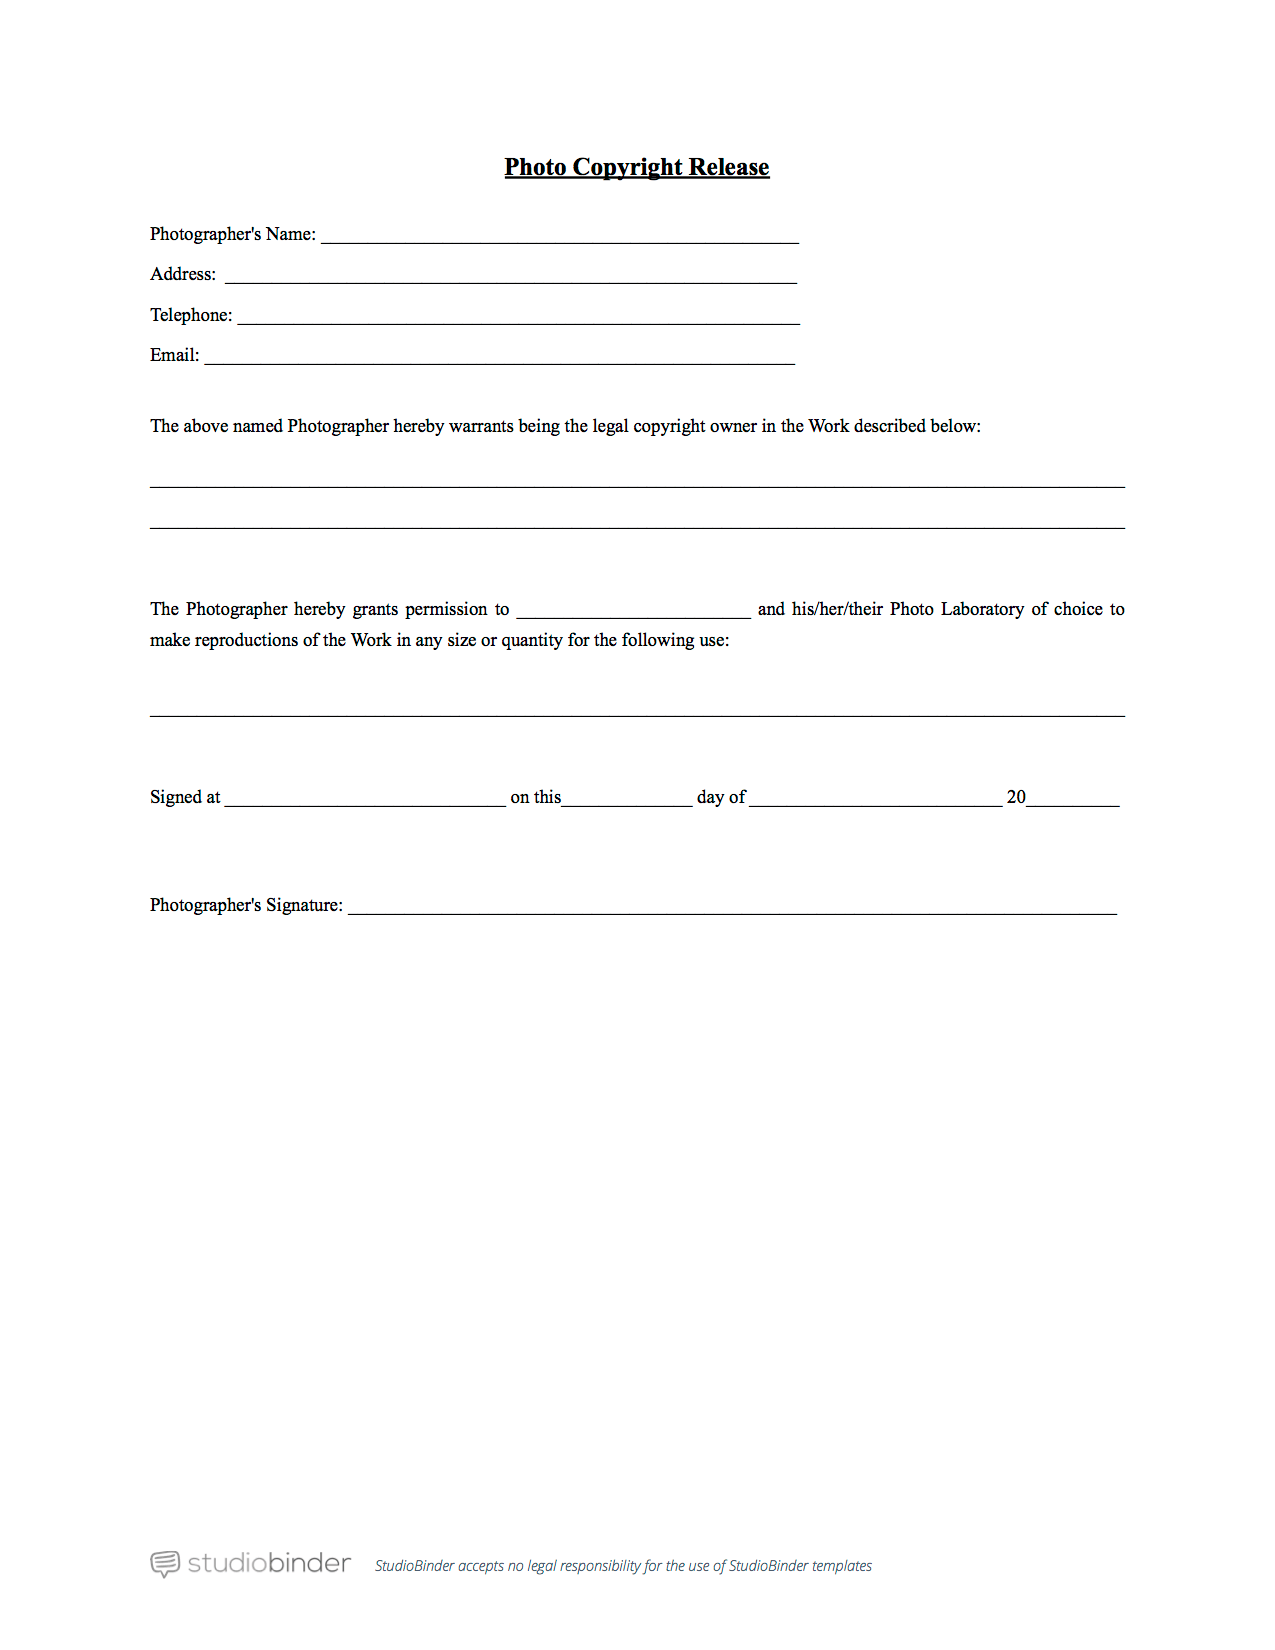 You Should Have a Photo Release Form Template